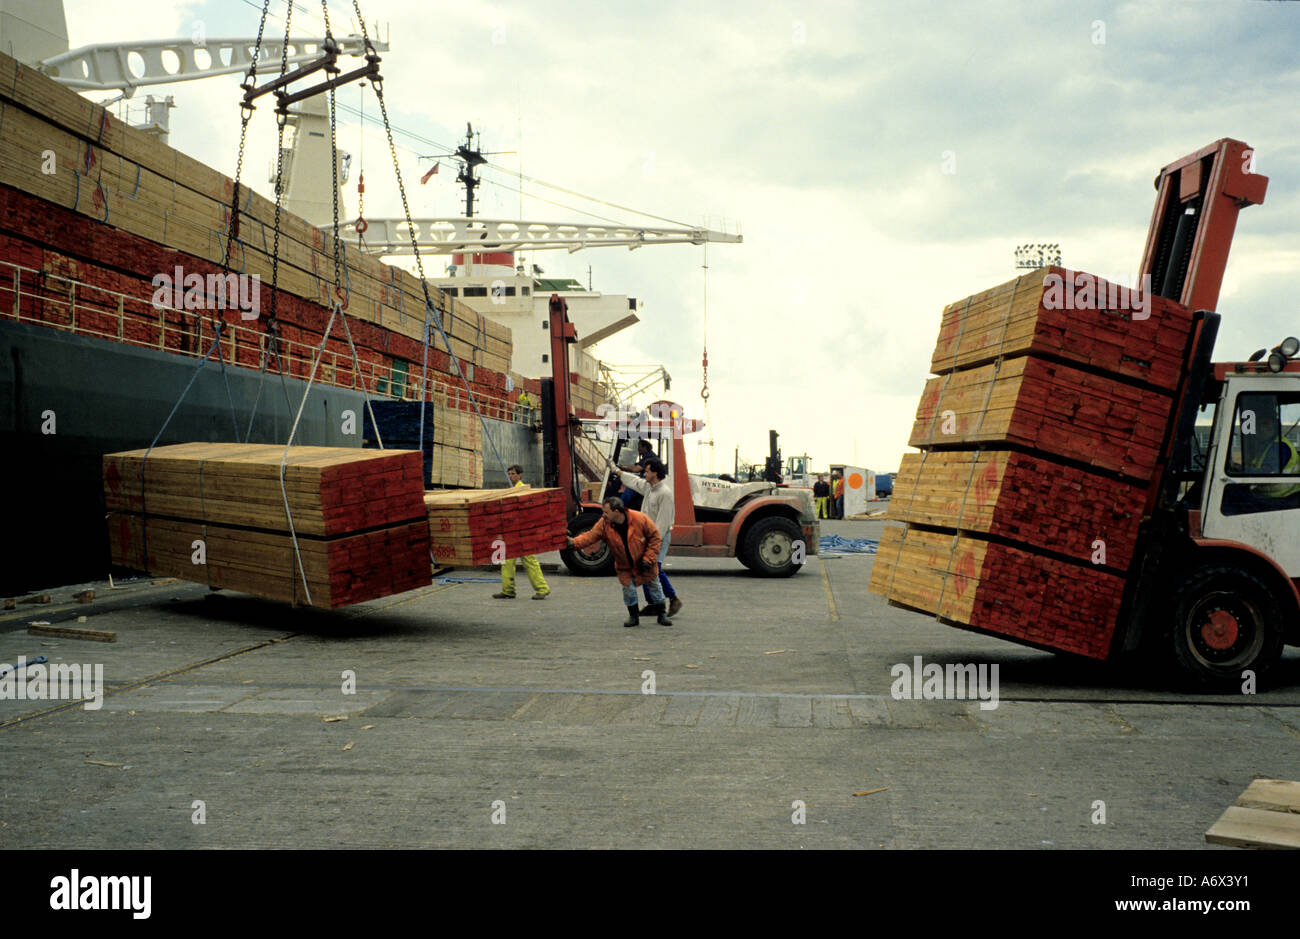 Hardwood imports are un-loaded at Newport docks in South Wales - Stock Image